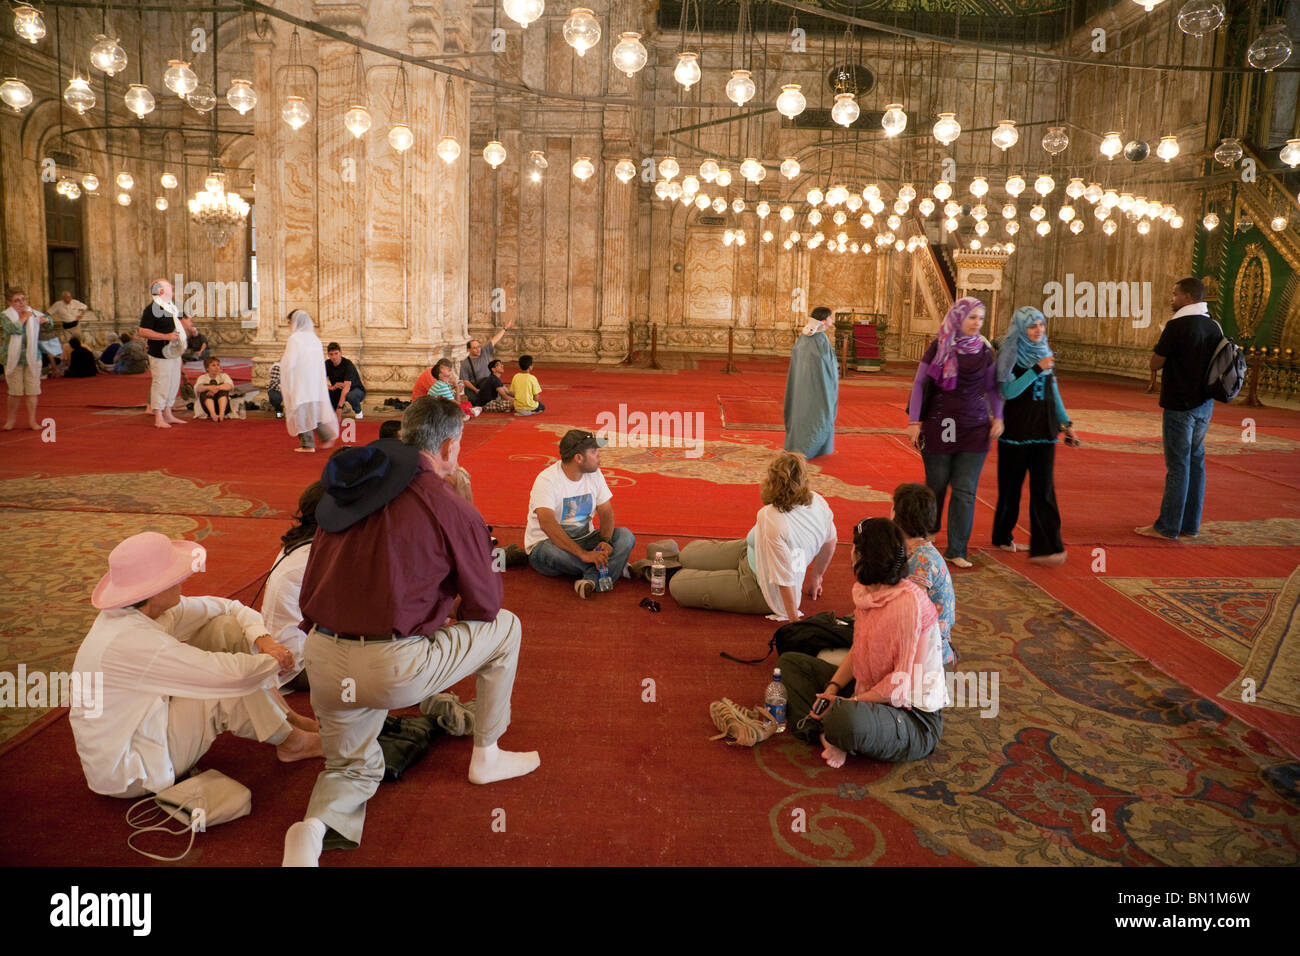 Tourists mingle with local people  inside the Mosque of Muhammad Ali Pasha, The Citadel, Cairo, Egypt - Stock Image